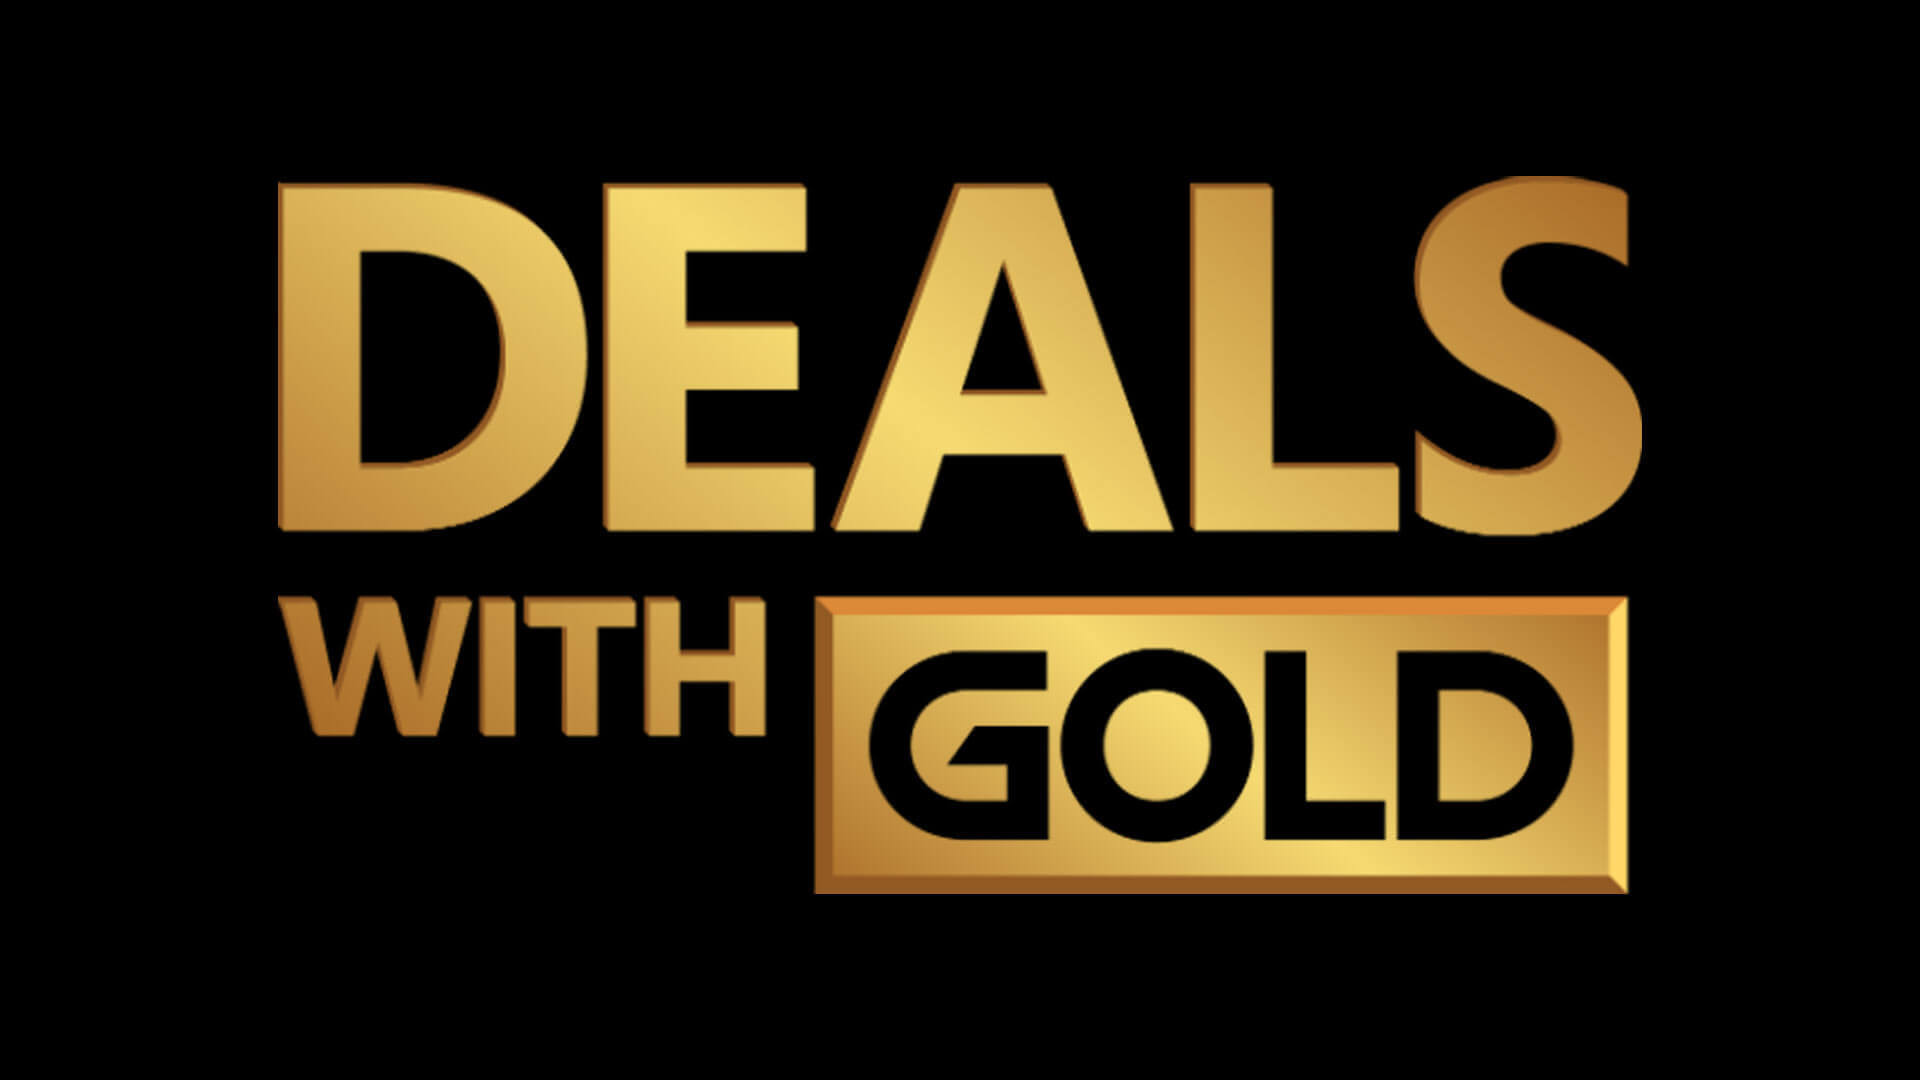 Deals with Gold semaine 07